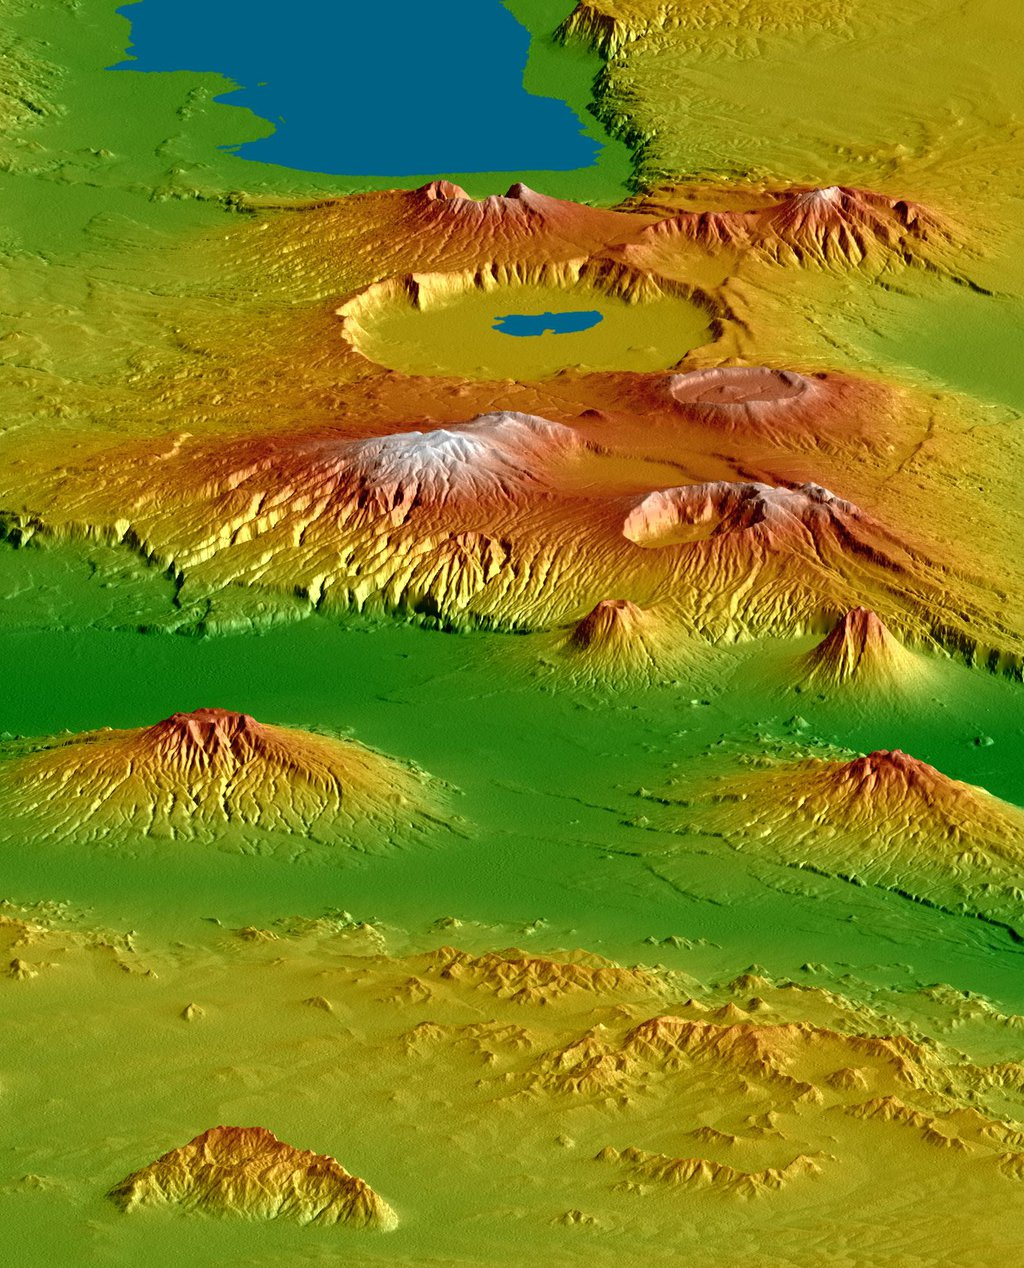 NASA's Shuttle Radar Topography Mission shows the Crater Highlands of Tanzania rising far above the adjacent savannas.